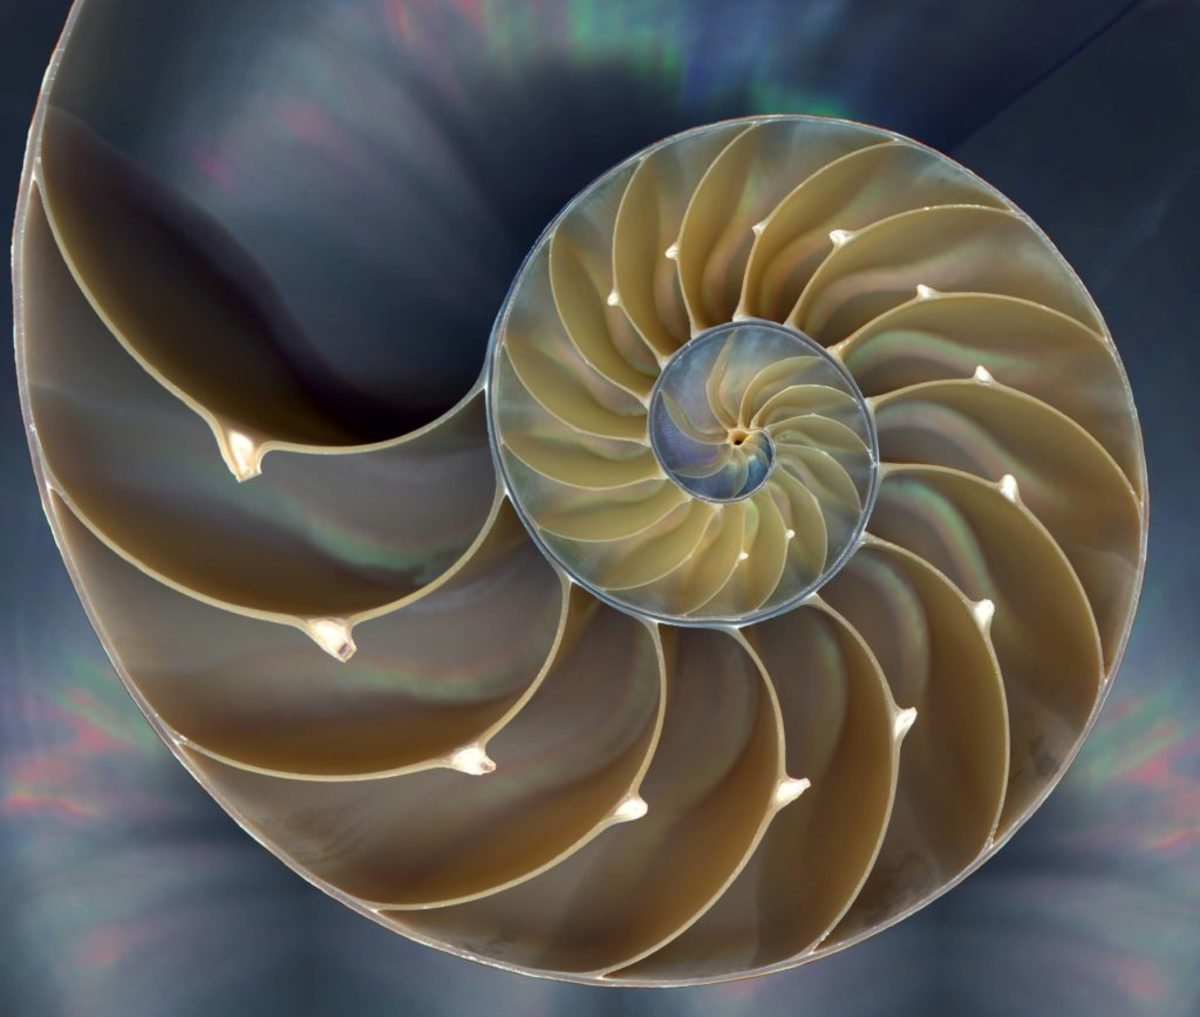 Nautilus shell follows spira mirabilis. Photo credit: www.somanautiko.com